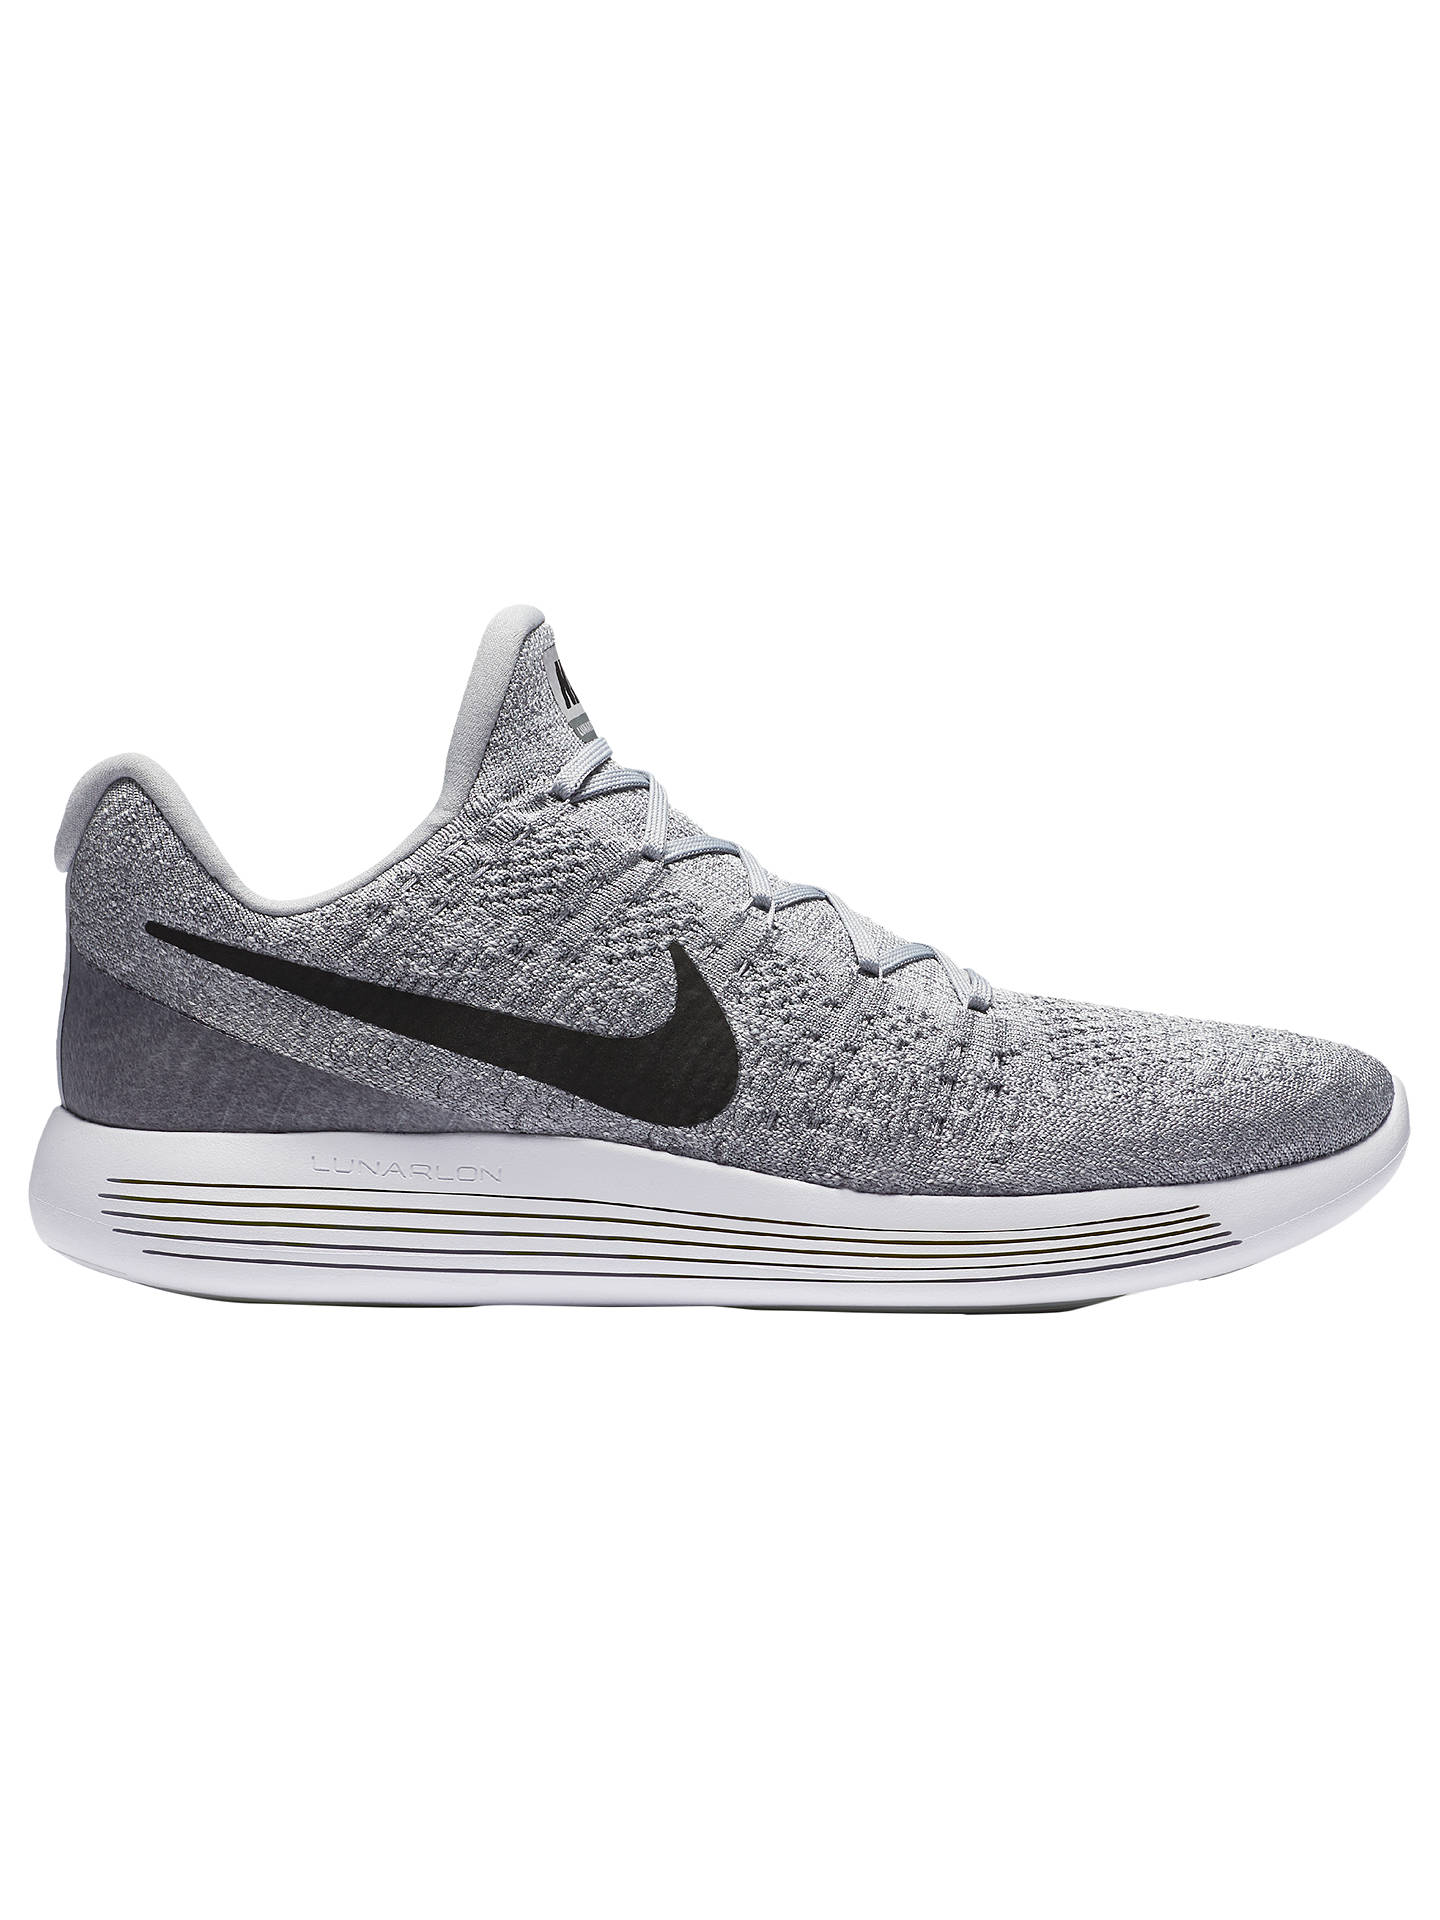 sale retailer 5ab91 8d648 Nike LunarEpic Low Flyknit 2 Men's Running Shoes, Grey/Black ...